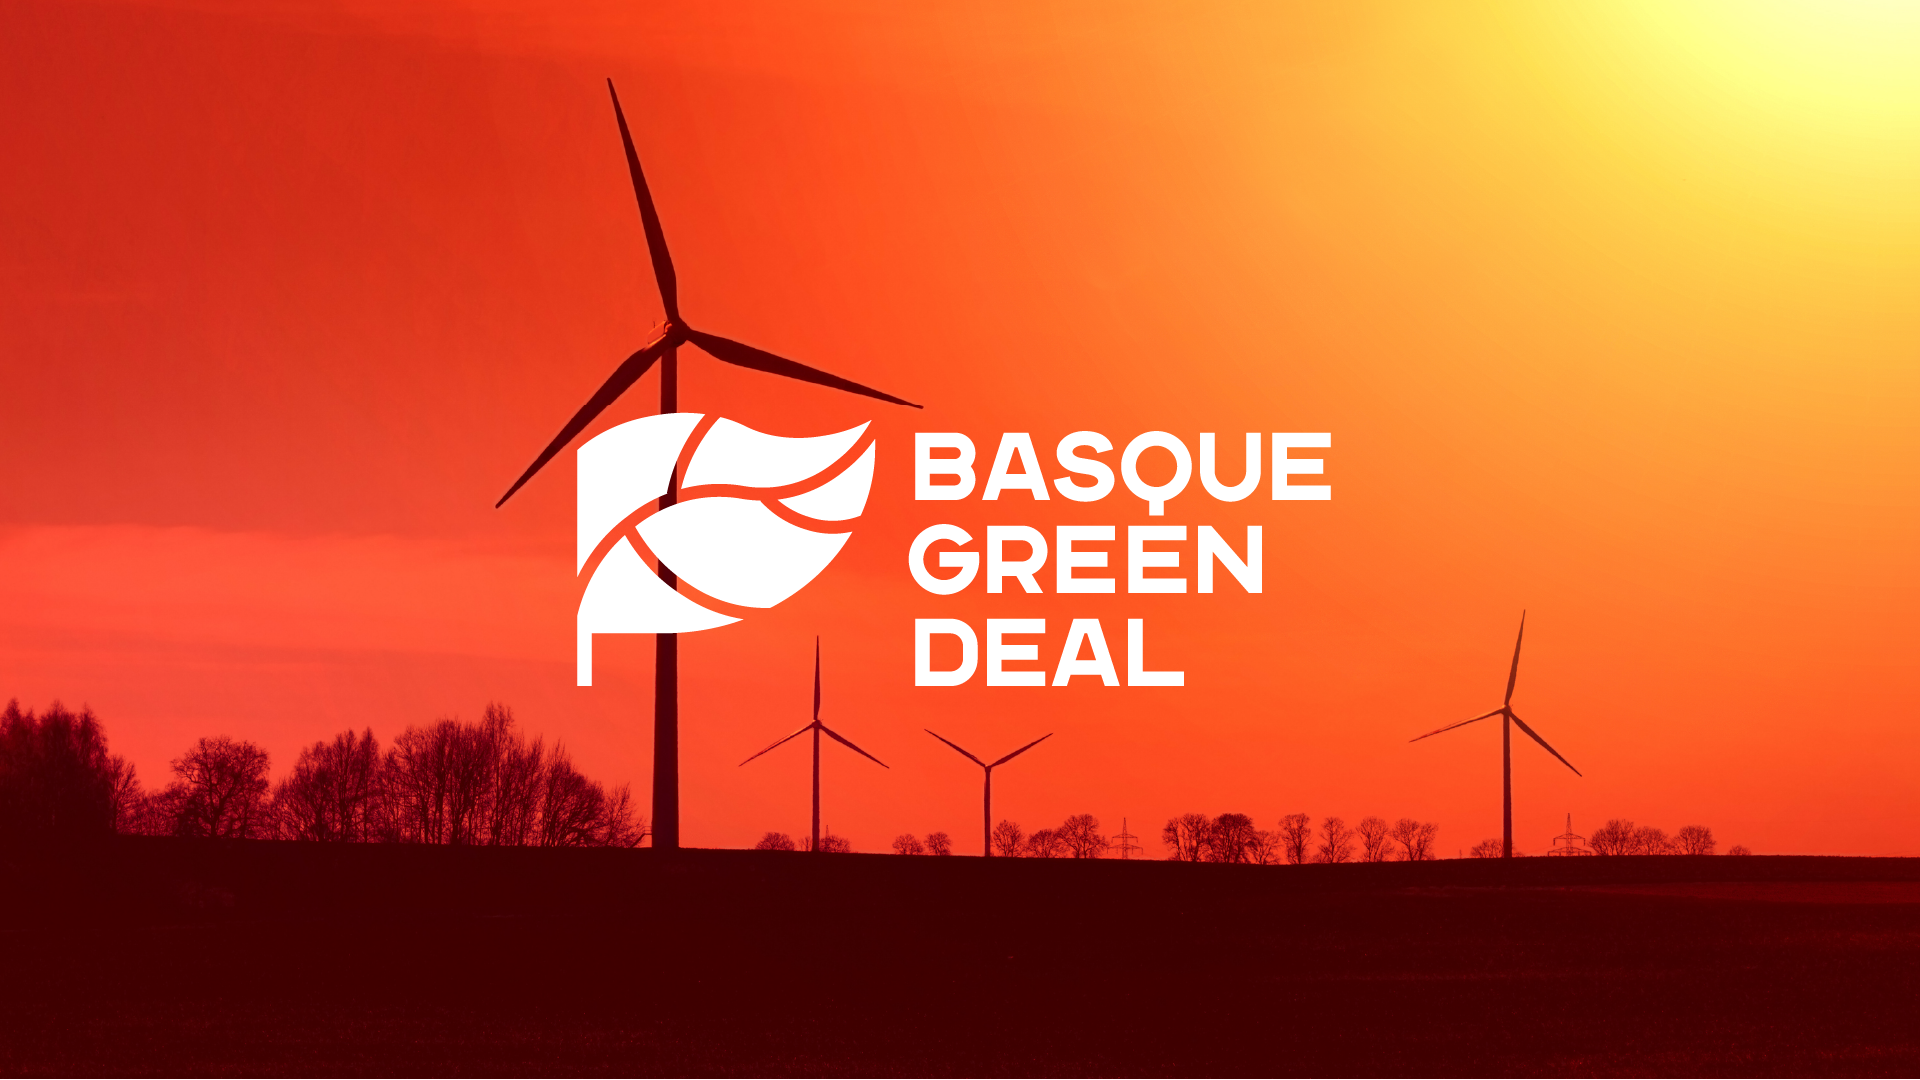 Basque_Green_Deal_12R.png